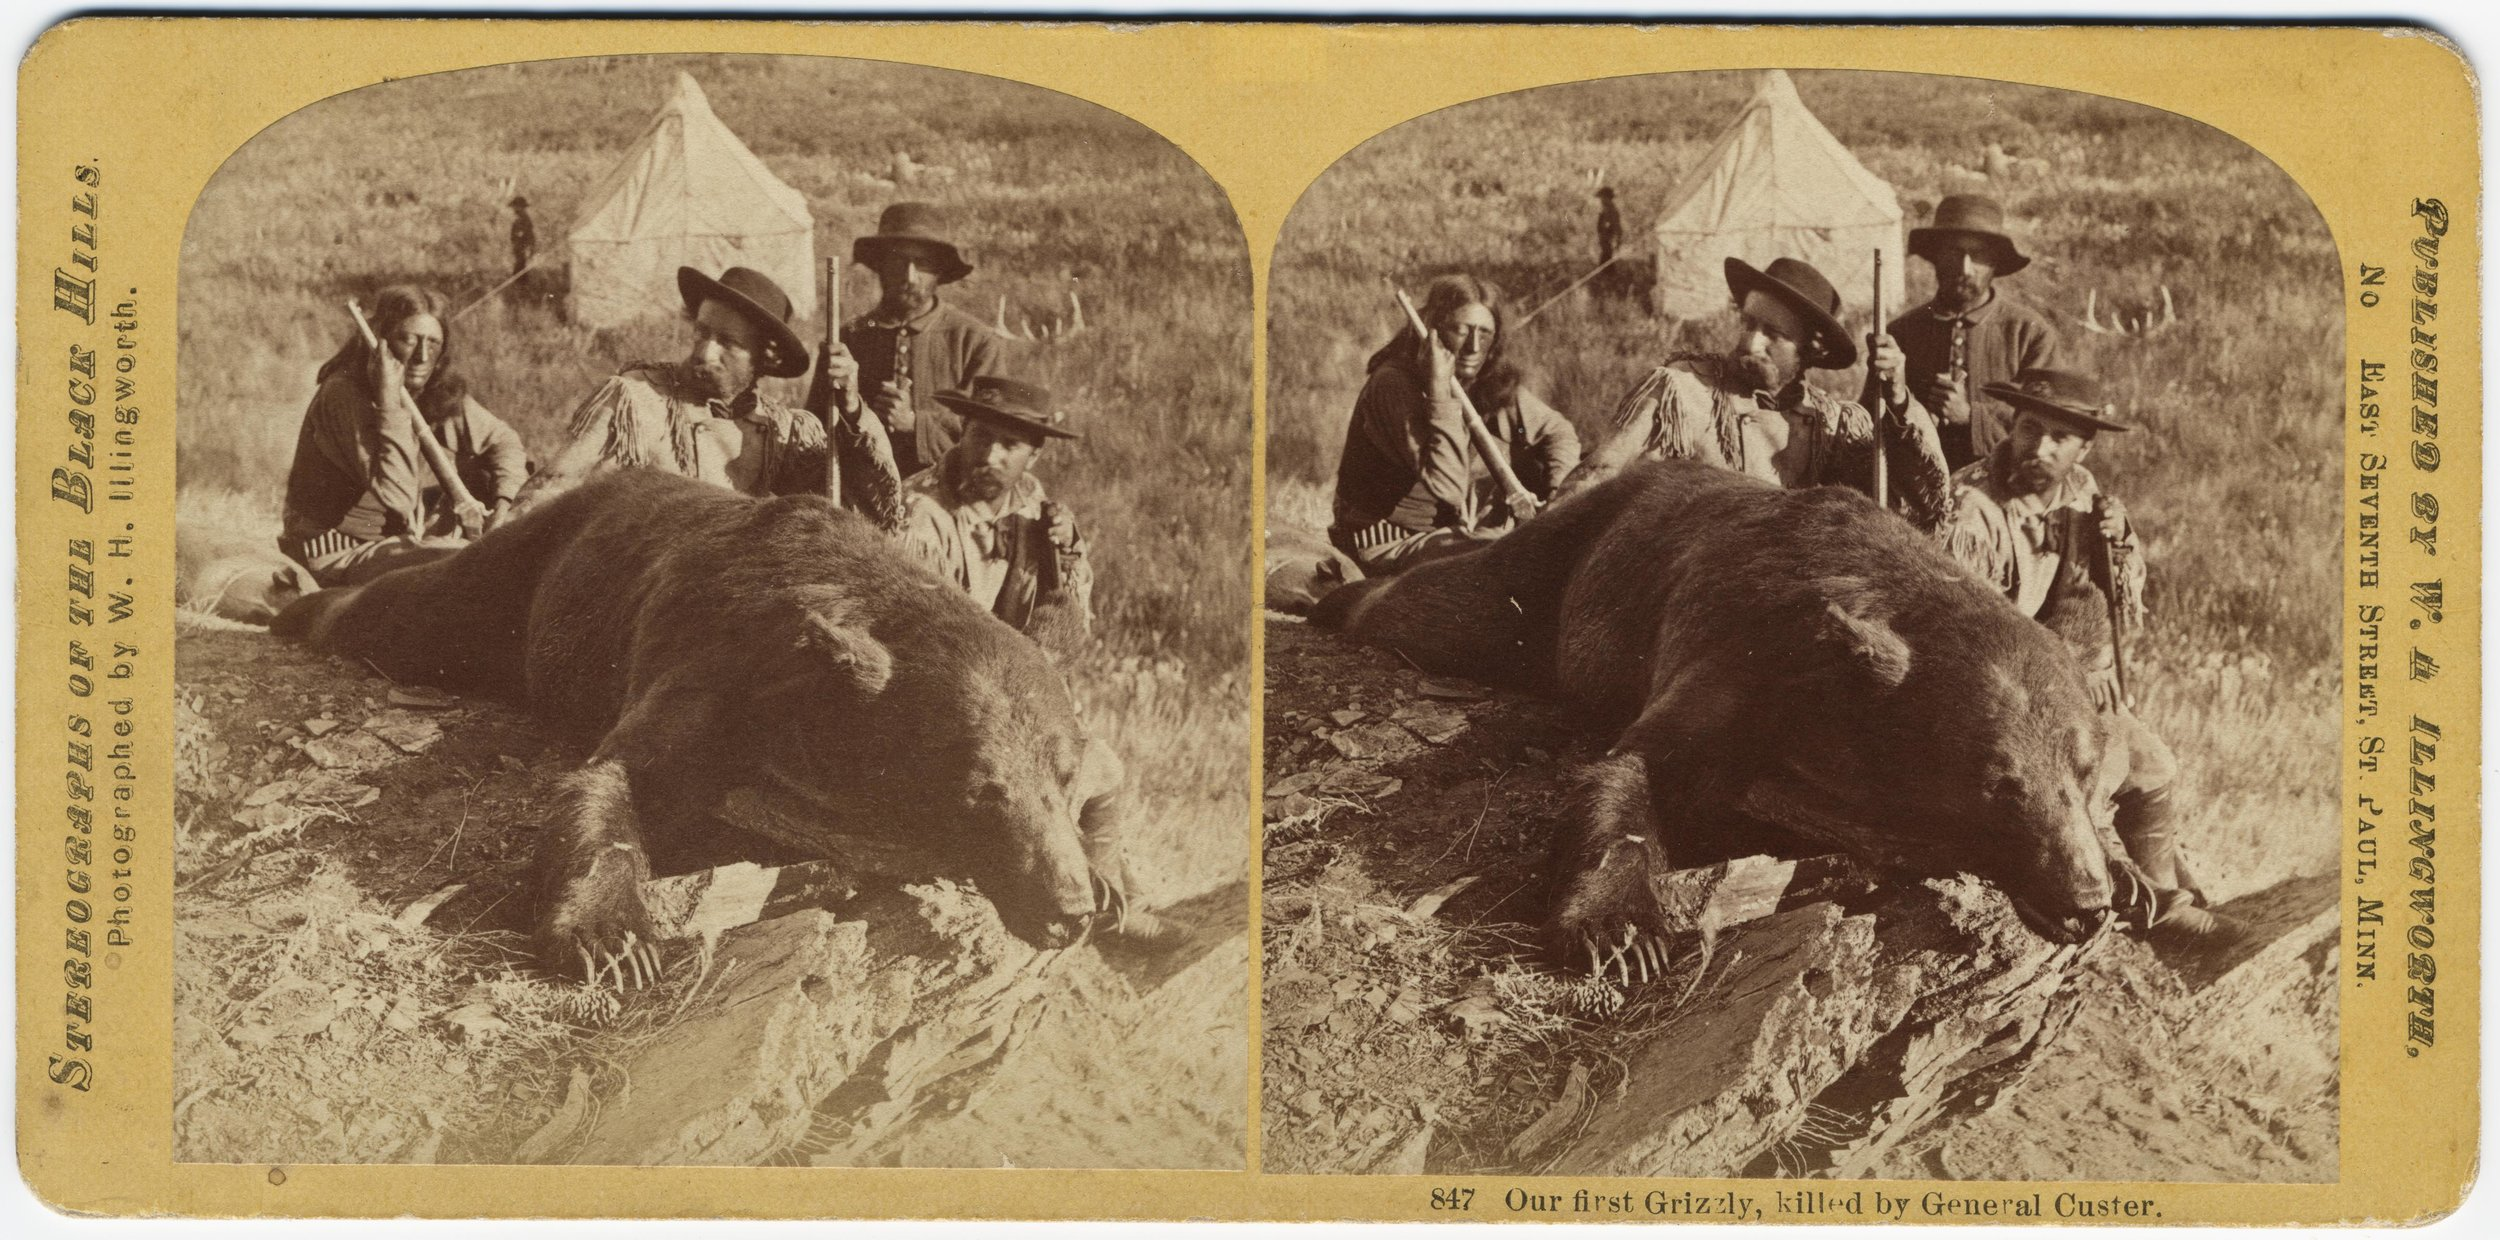 Custer Expedition Stereograph:  This expedition into the Black Hills in 1874 began the first documented history of the area. Lt. Col. George A. Custer poses with his first grizzly bear in this William Illingworth photo. See our PastPerfect page to see the whole series of stereographs.